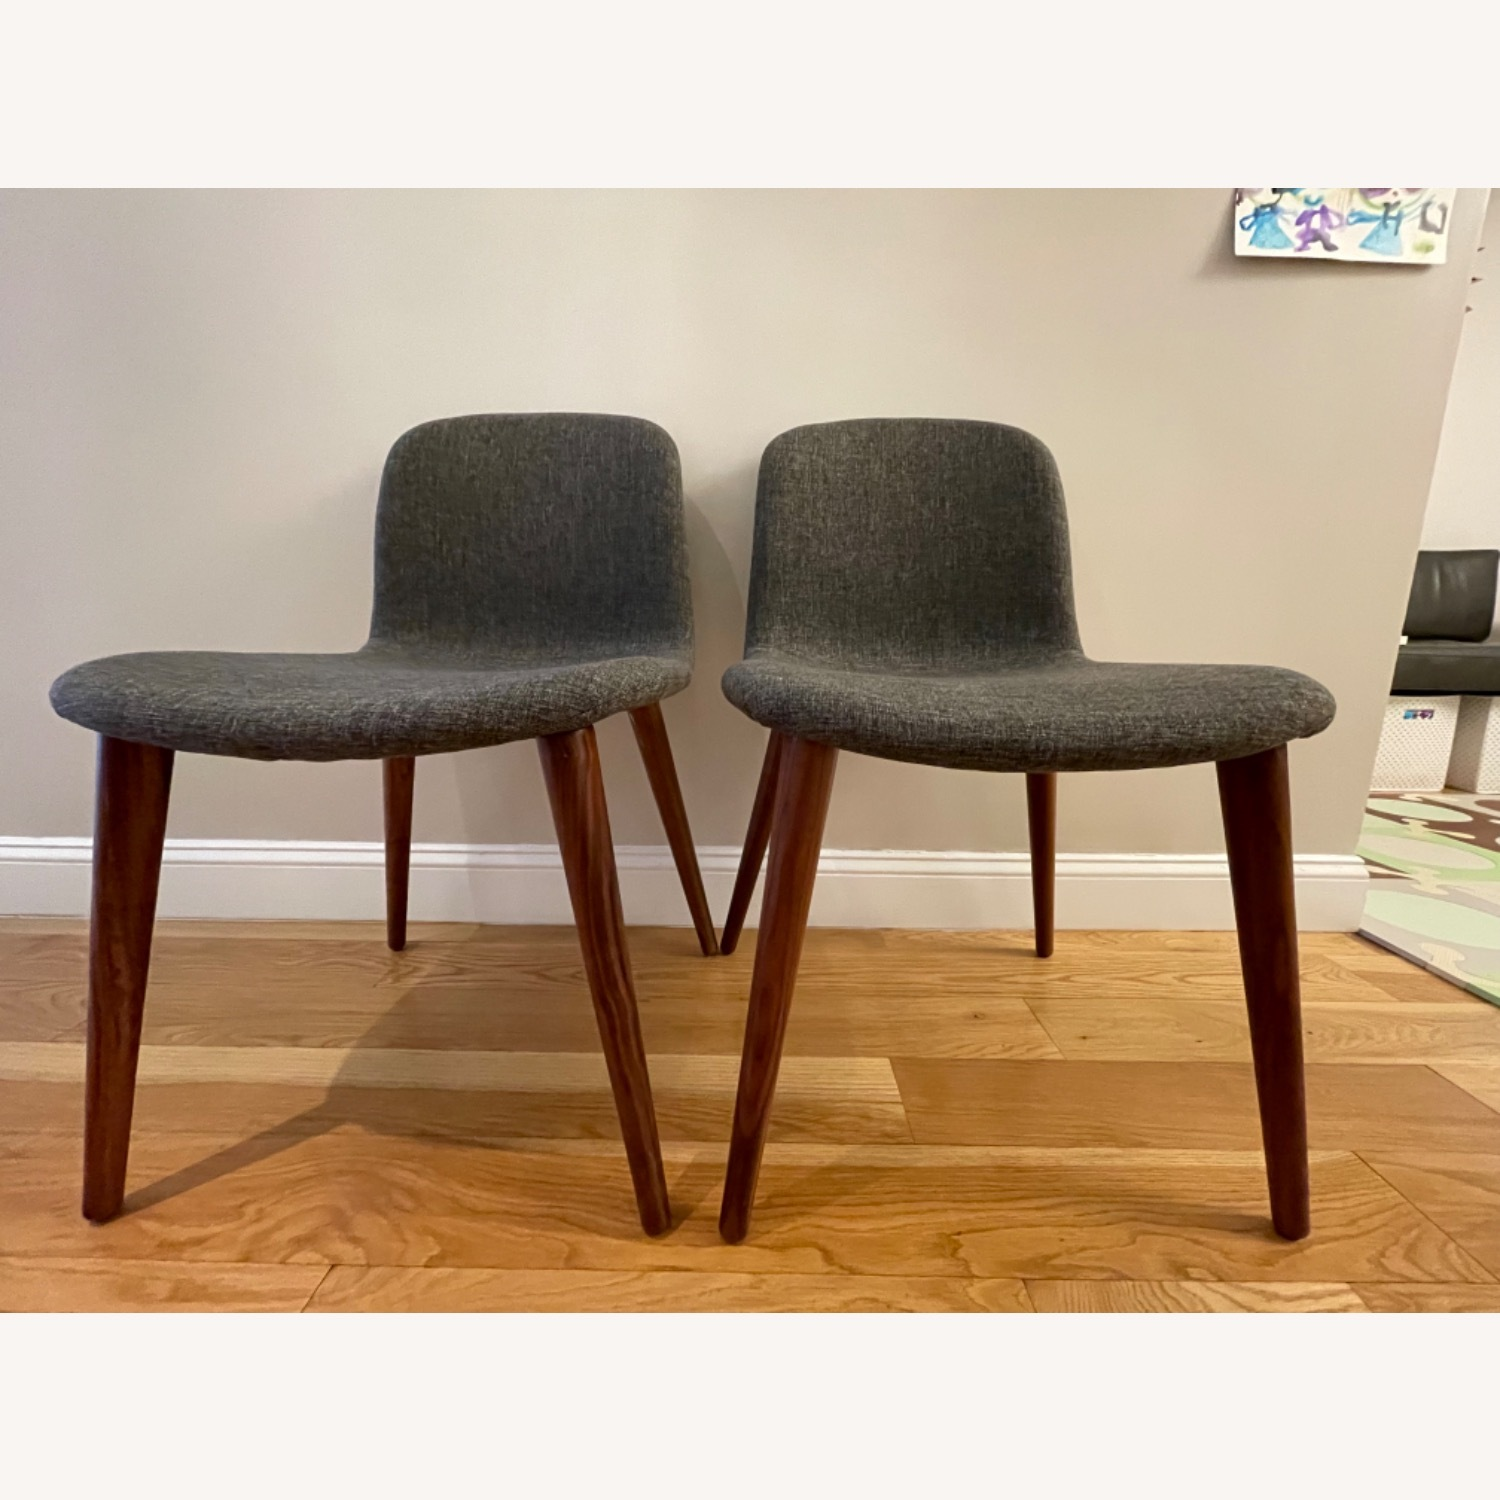 Design Within Reach Bacco Chairs - image-15